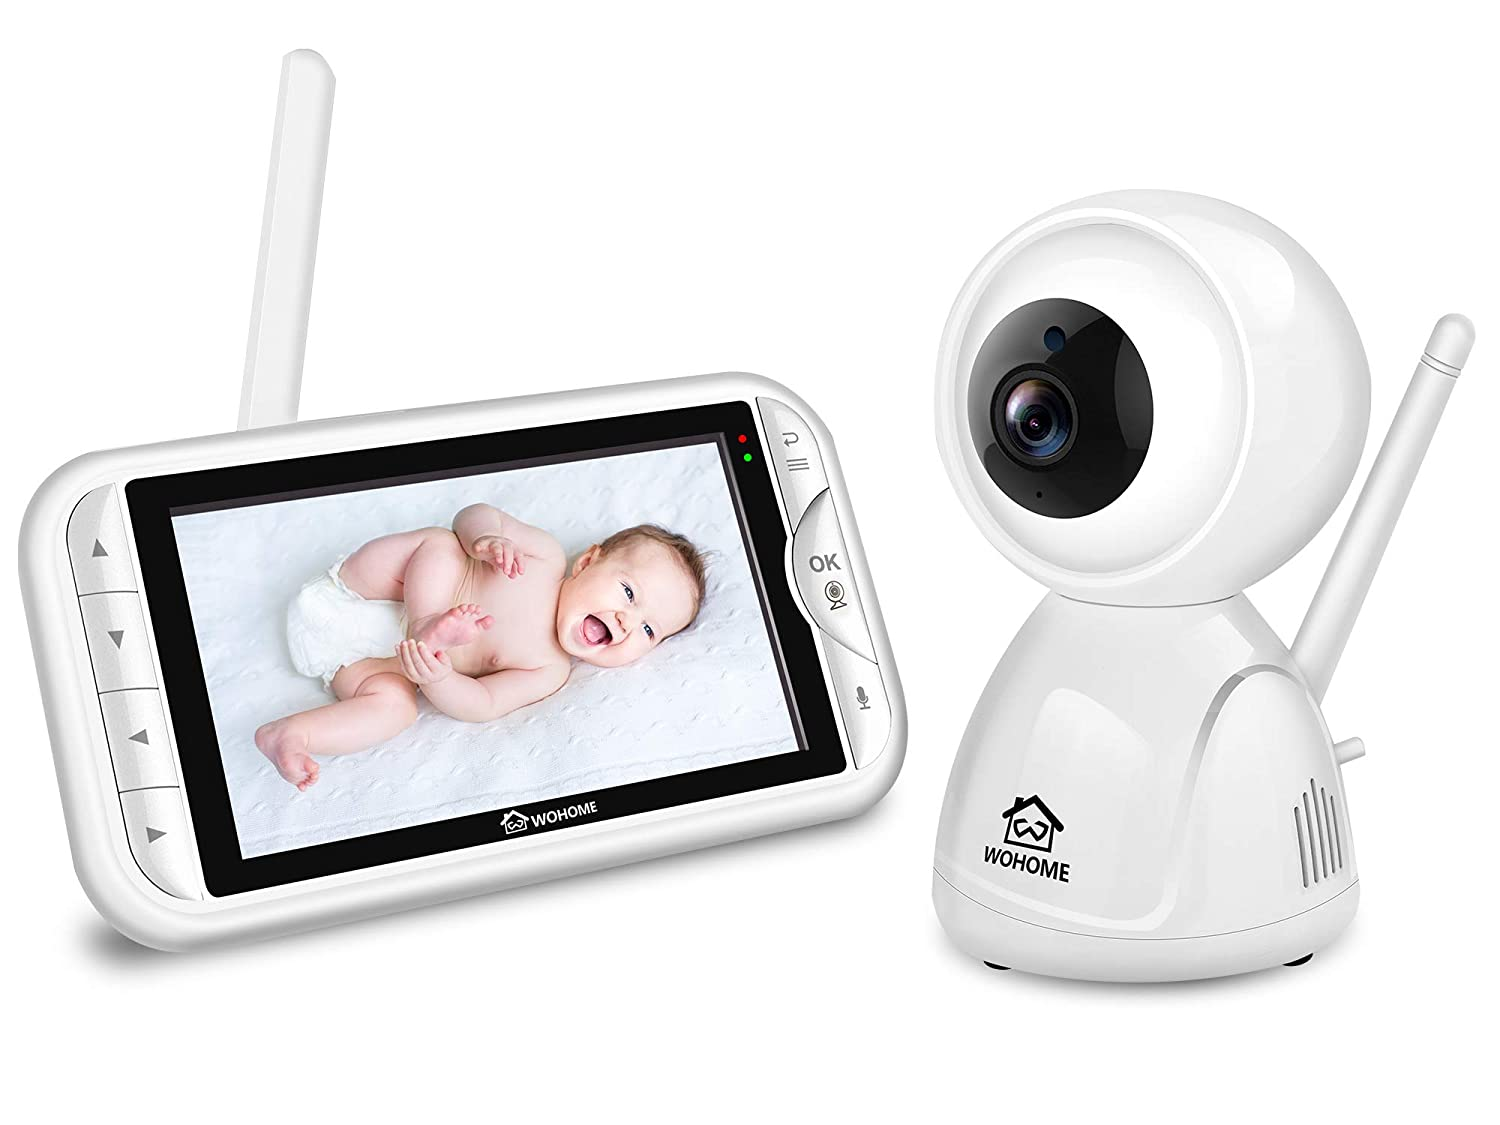 "Wohome LY-129 Video Baby Monitor with Camera and Audio, Remote Pan, Tilt, One-click Zoom, 720 HD 5""Display, 2-Way Talk, 900ft Range, Tem/sound alert, Night Vision, Thermal Monitor and Wall Mount kit : Baby"